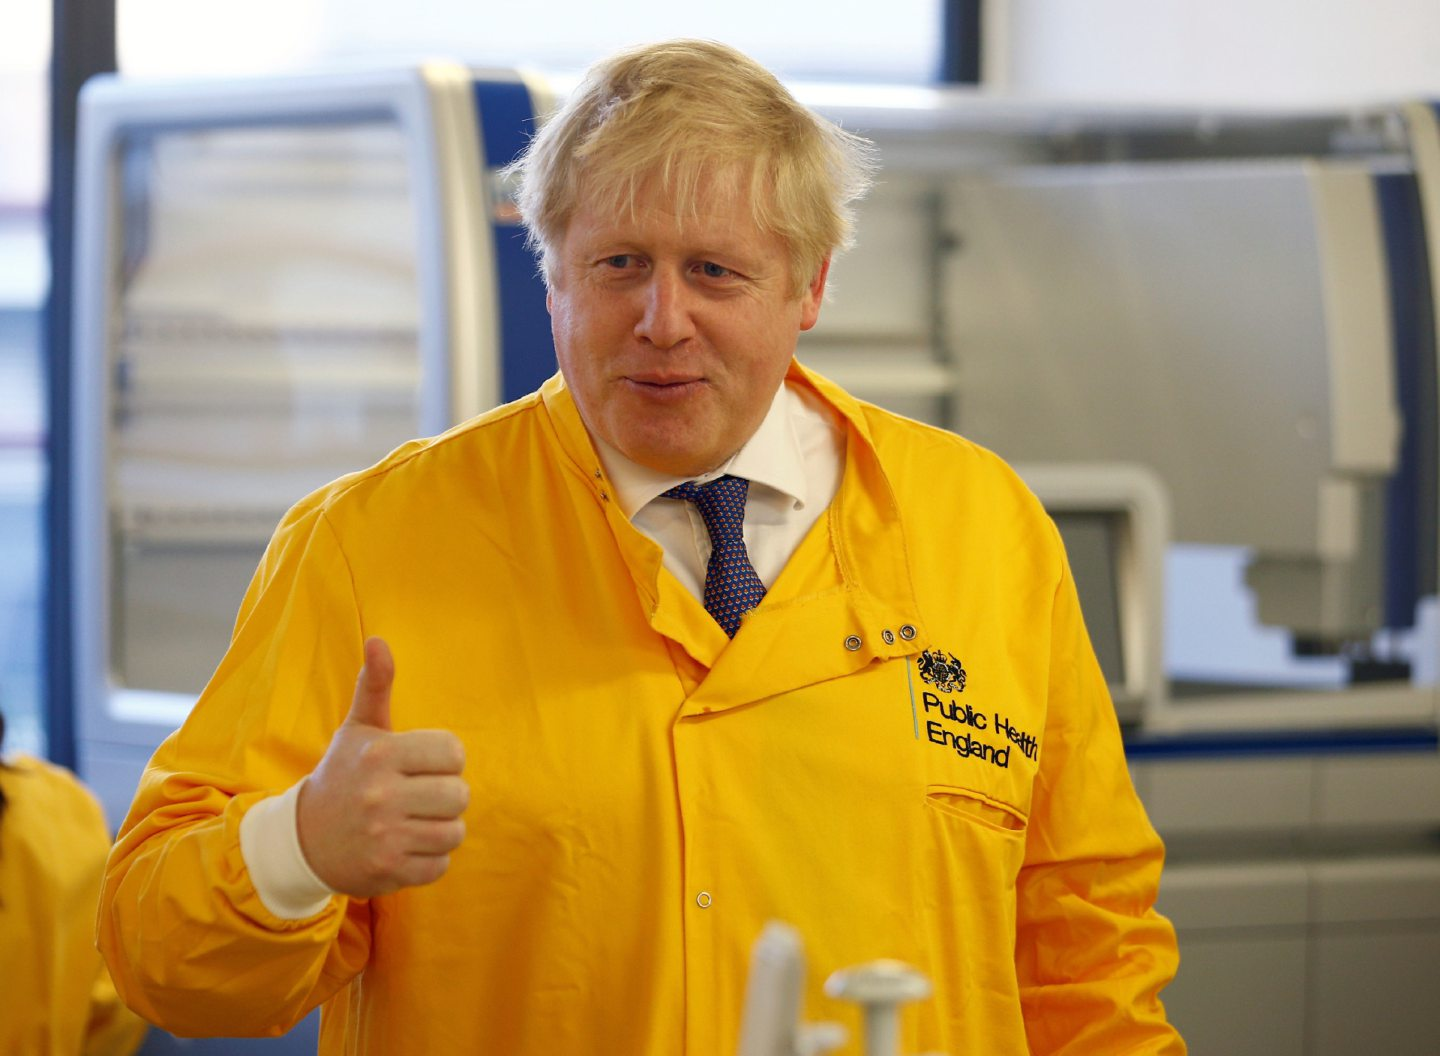 Prime Minister Boris Johnson visits a laboratory at the Public Health England National Infection Service in Colindale, north London.